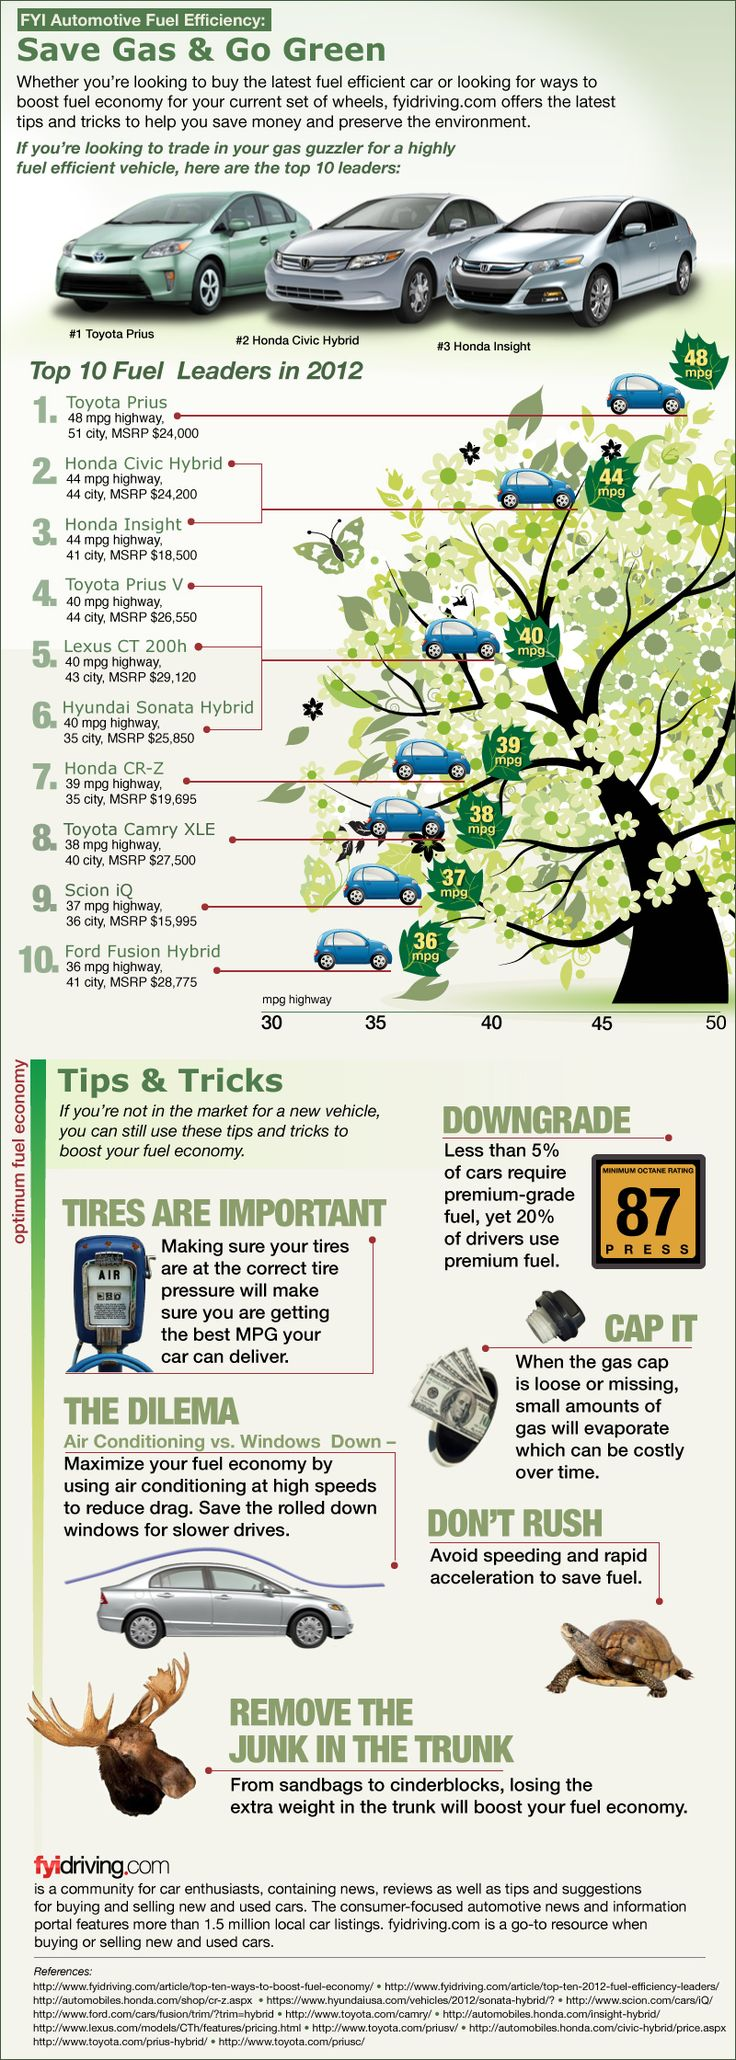 Save gas and go green infographic we should talk about these cars in earth club